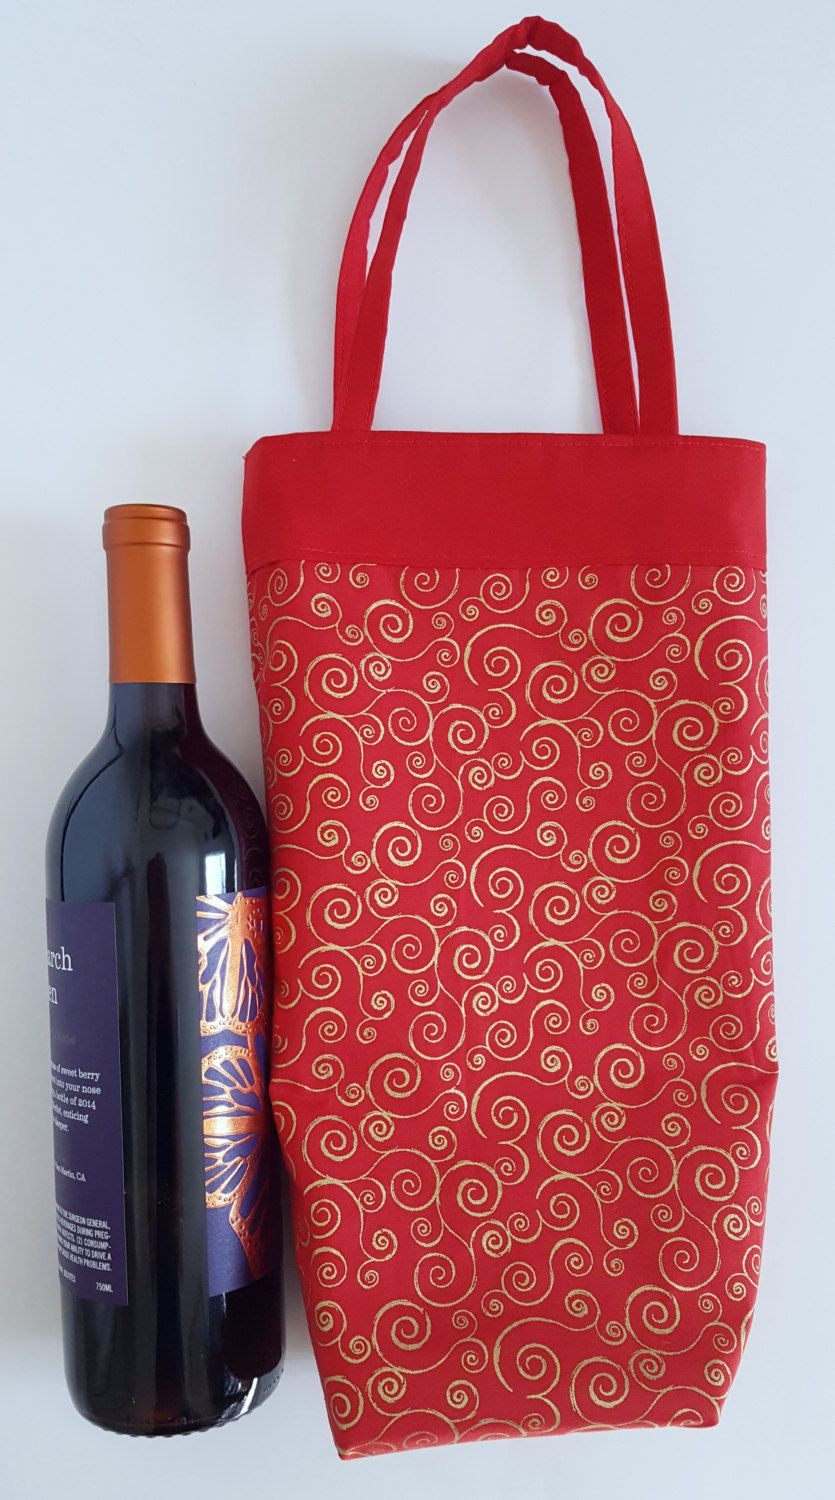 Christmas Wine Tote Wine Tote Bag Wine Bag Christmas Tote Holiday Wine Bag Christmas Party Holiday Party Lined Wine To Etsy Wine Tote Bag Christmas Wine